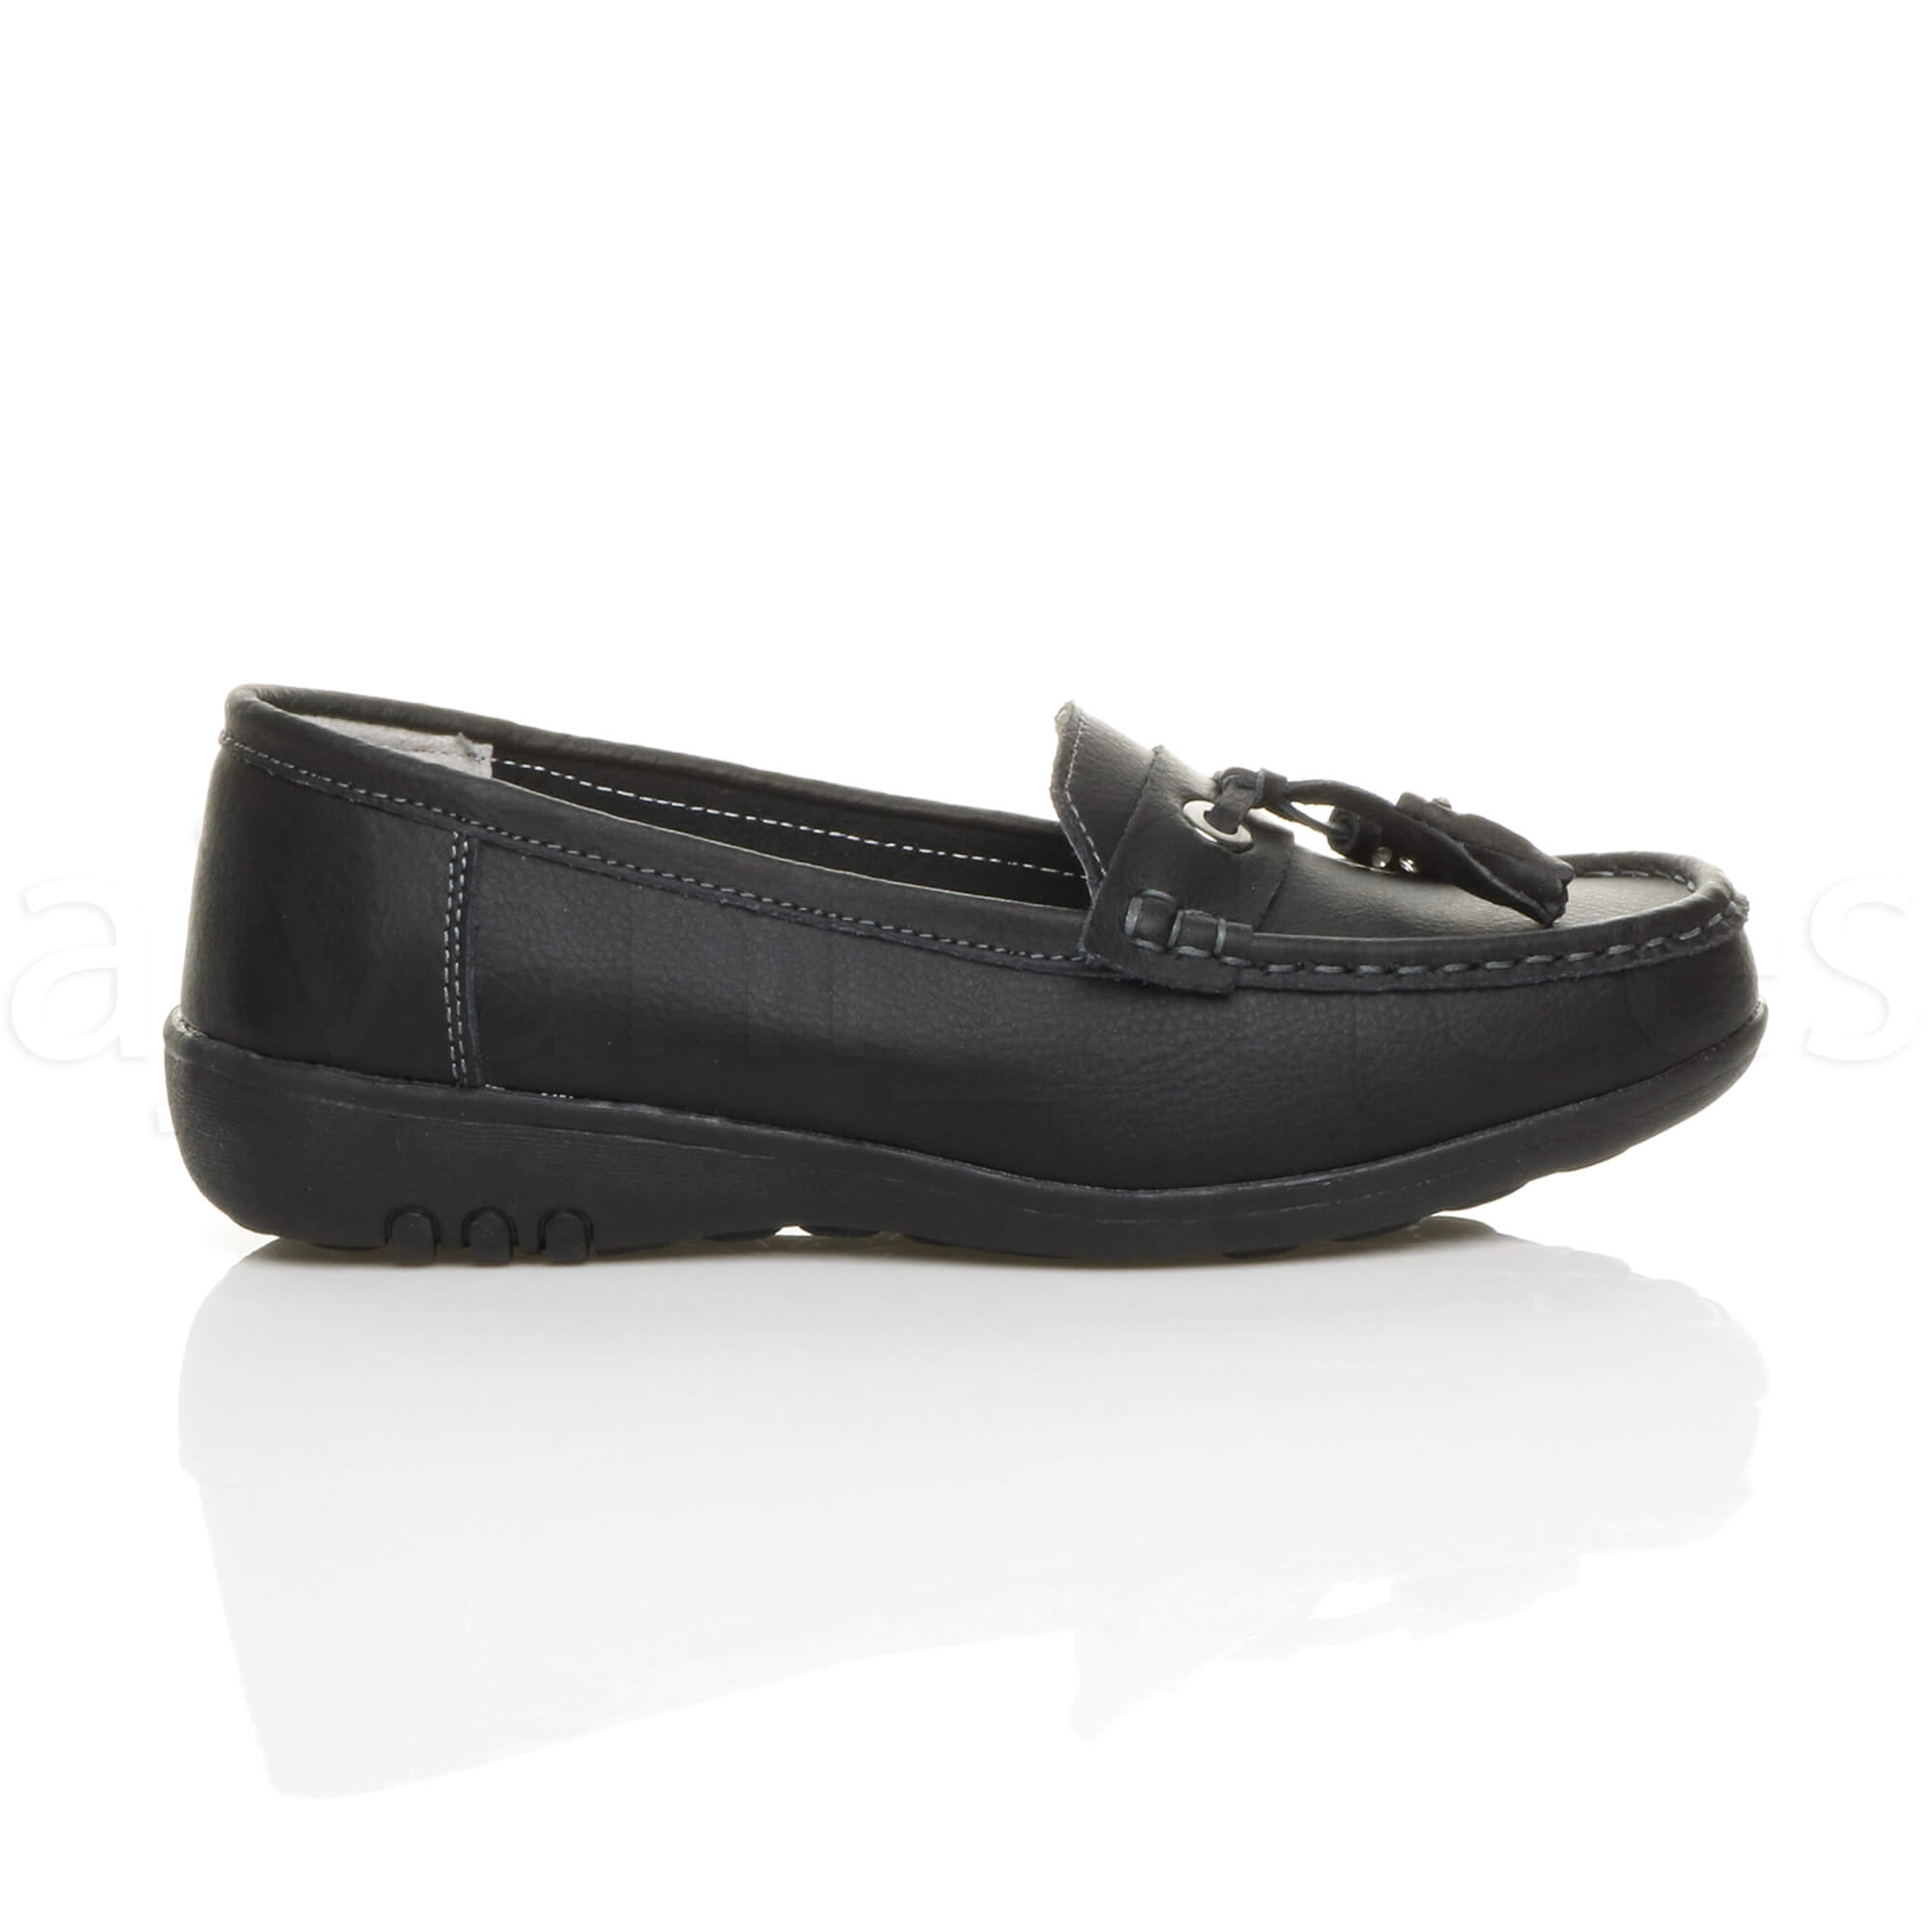 WOMENS-LADIES-LOW-HEEL-WEDGE-LEATHER-TASSEL-LOAFERS-COMFORT-MOCCASINS-SHOES-SIZE thumbnail 11